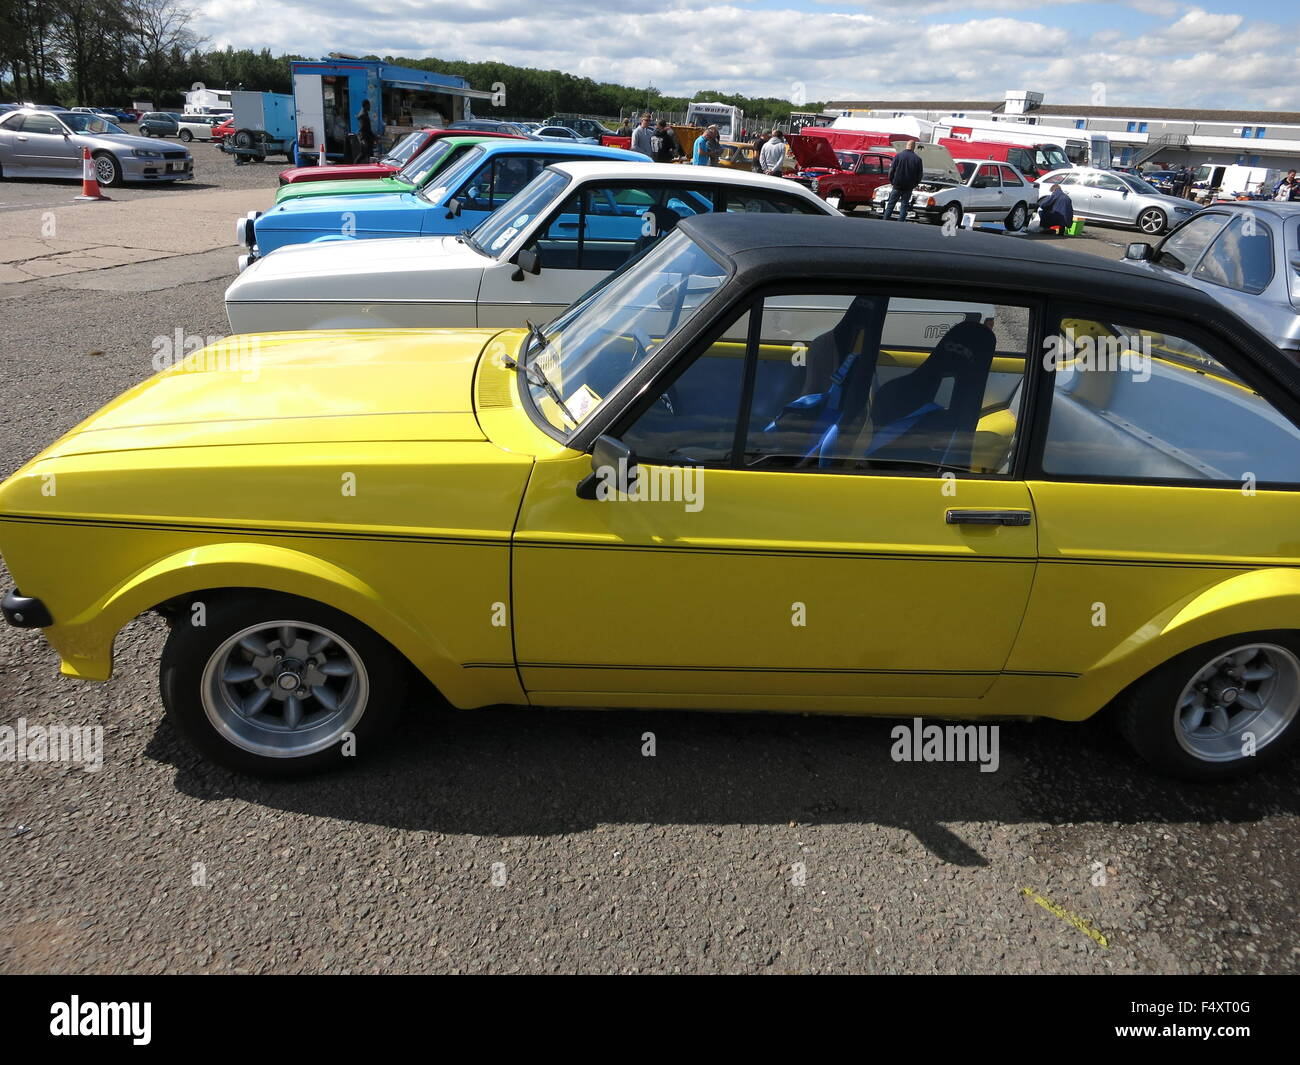 Ford Escort Mk Rs Mexico At Donnington Rsoc Rs Owners Club Event Showing Yellow